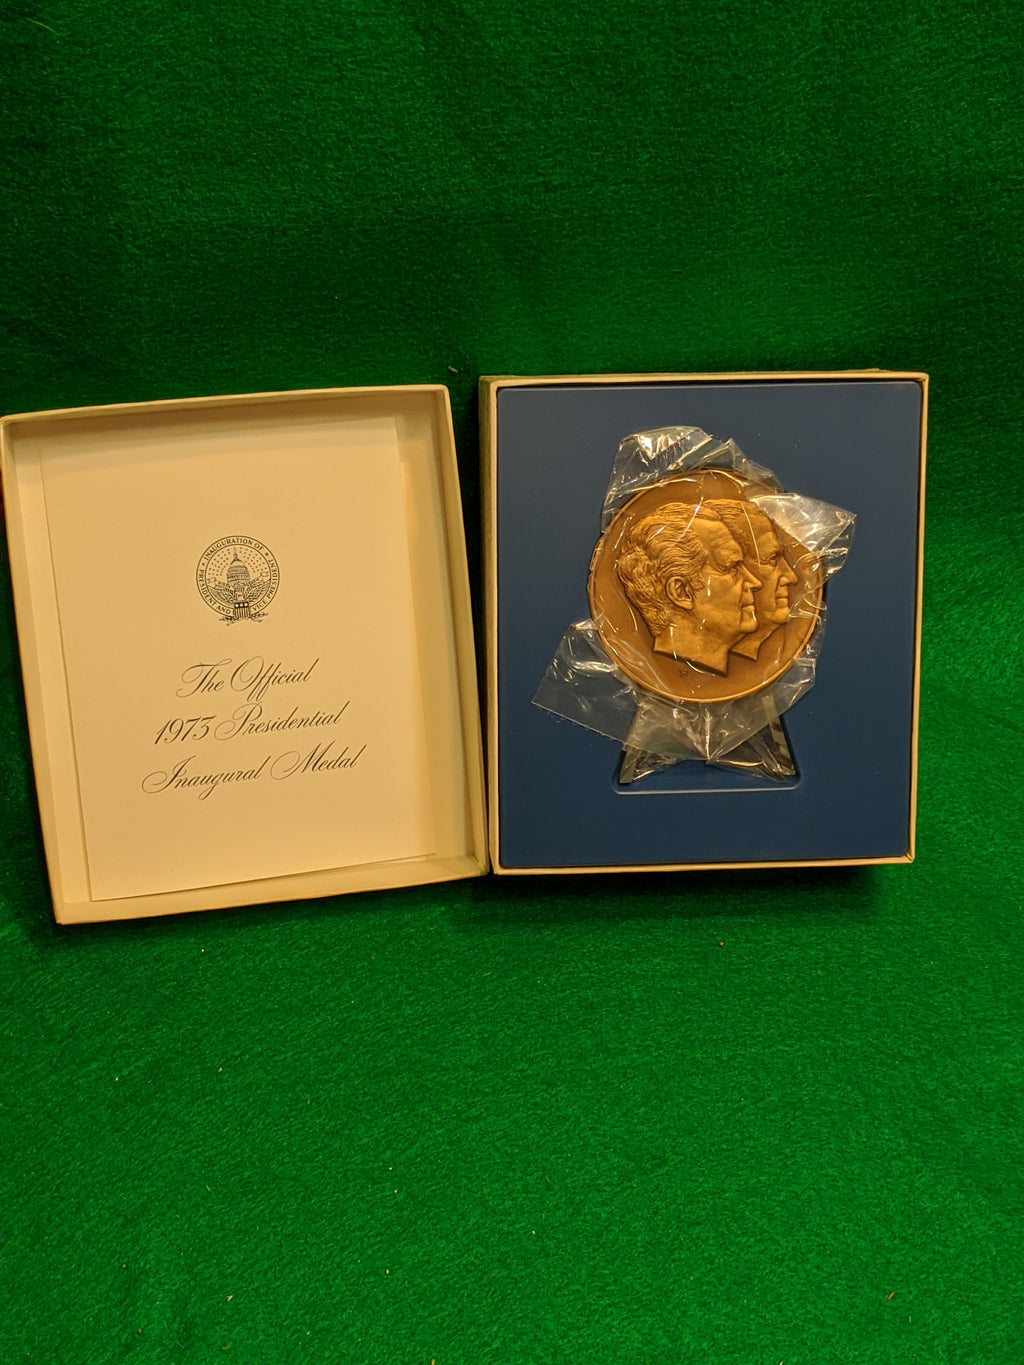 1973 Inaugural Medal, bronze traditional finish, Franklin Mint